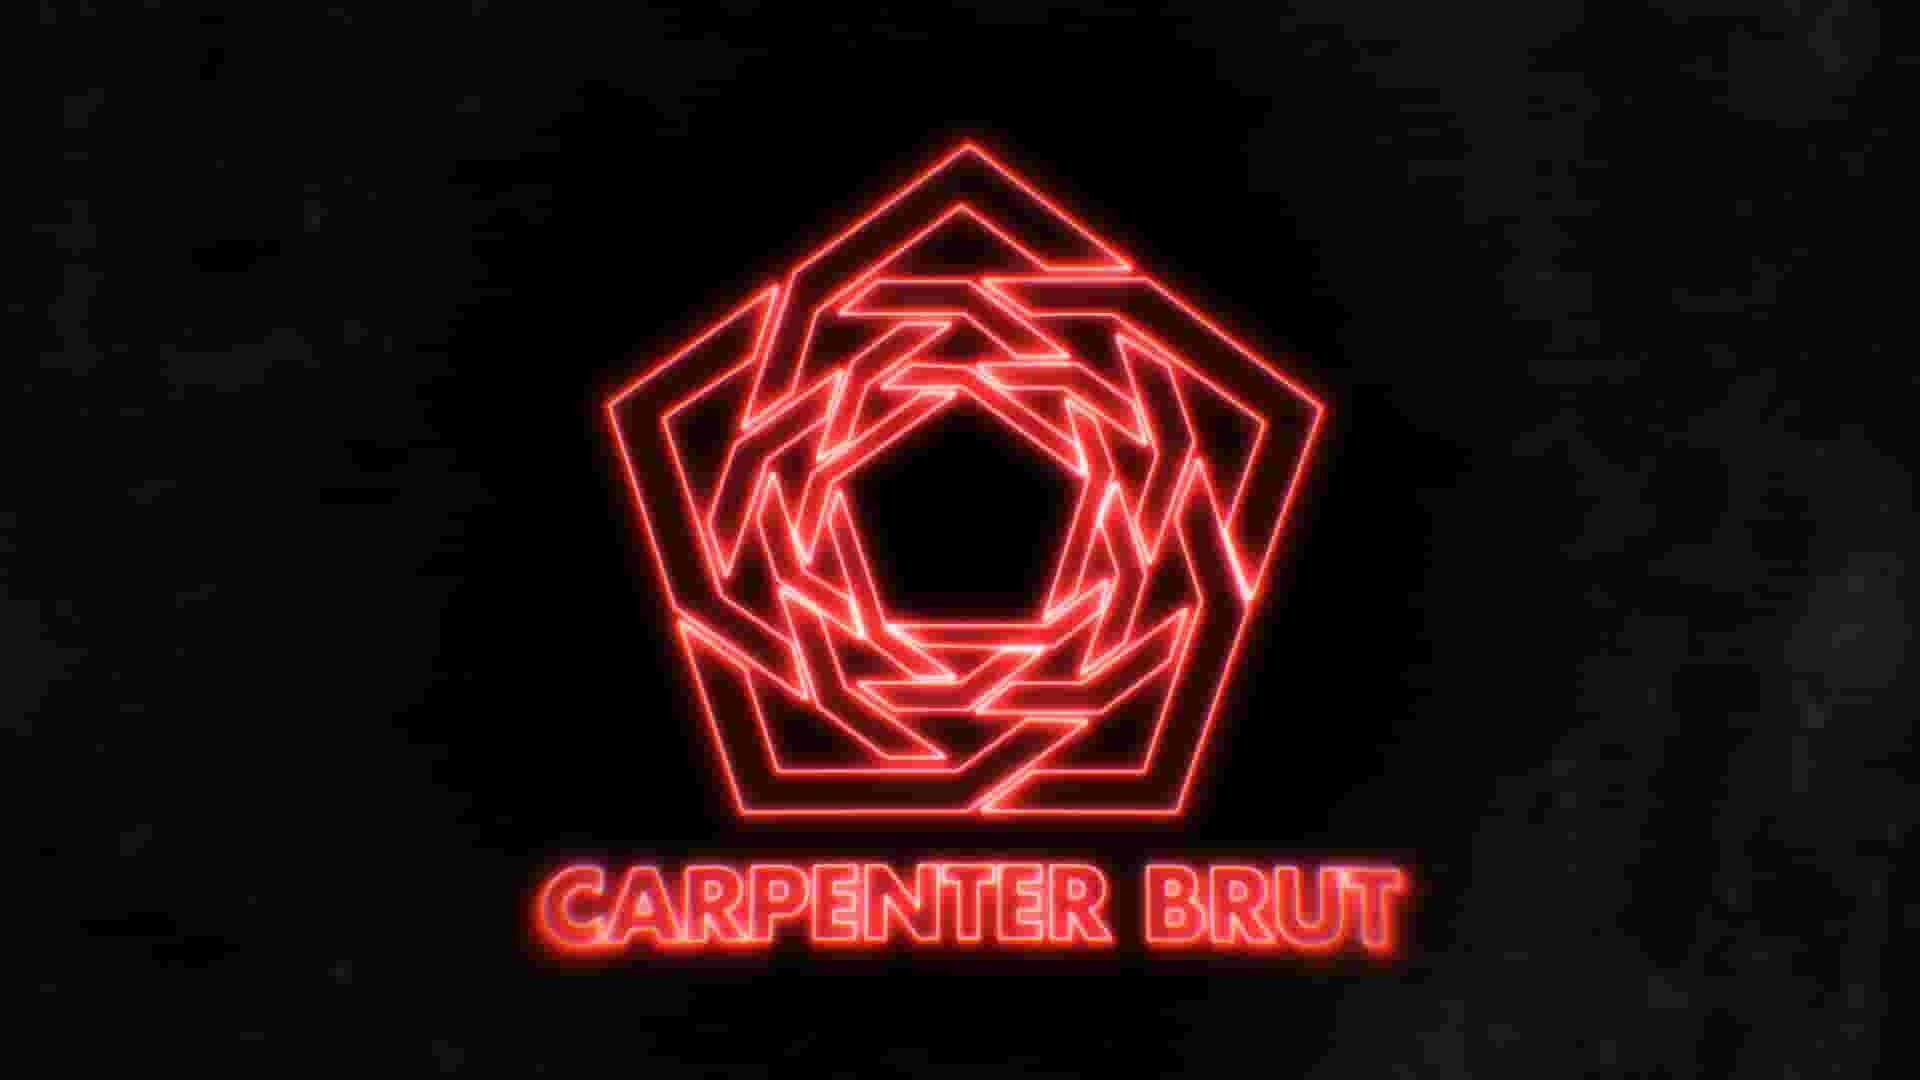 Who is Carpenter Brut?